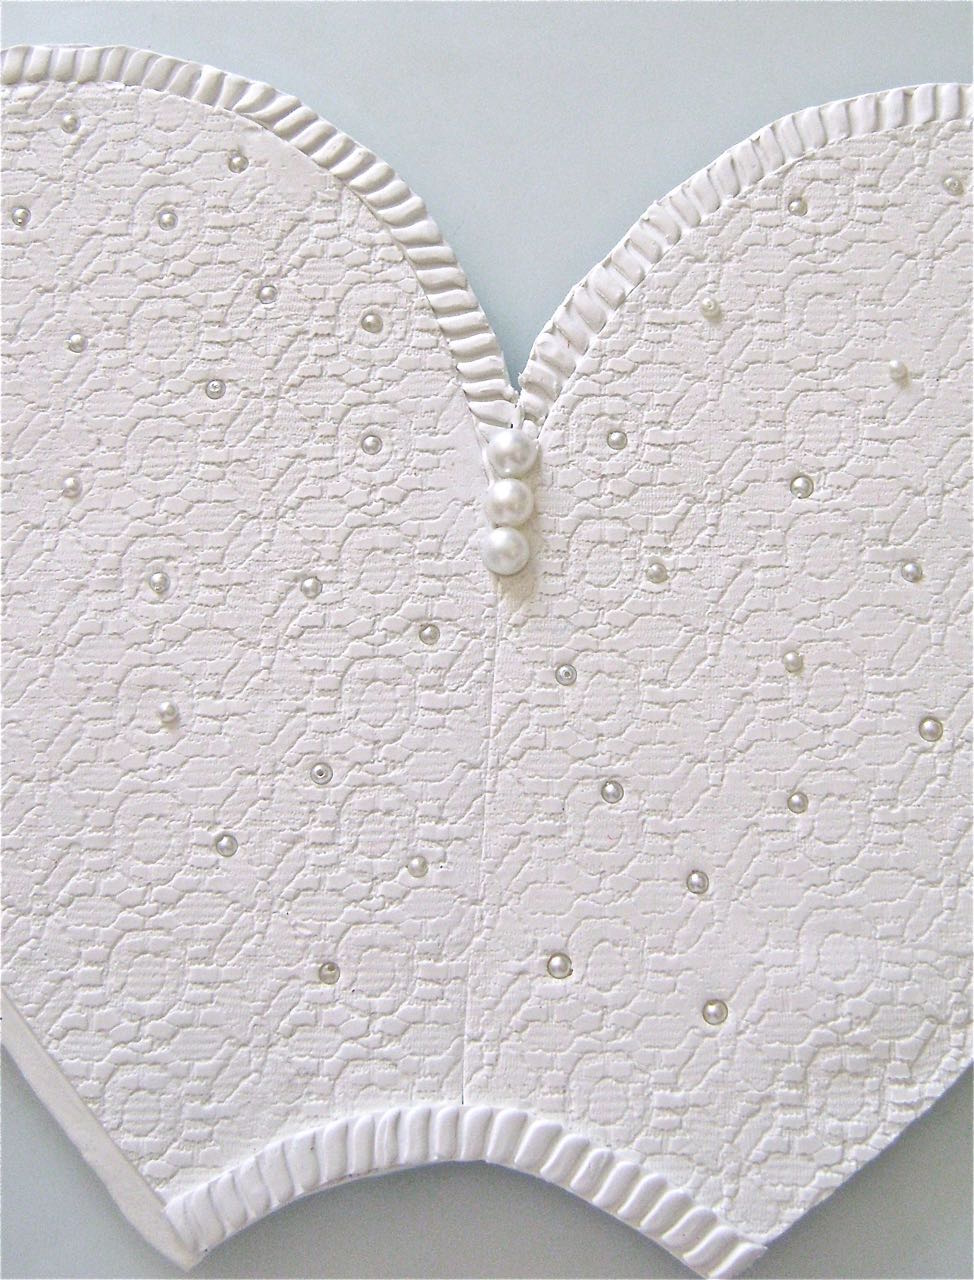 step 13 - Arrange seed pearls randomly on the front embossed areas.  When you're certain of placement, push down on the beads with the flat wide edge of a ruler to evenly embed them into the clay.